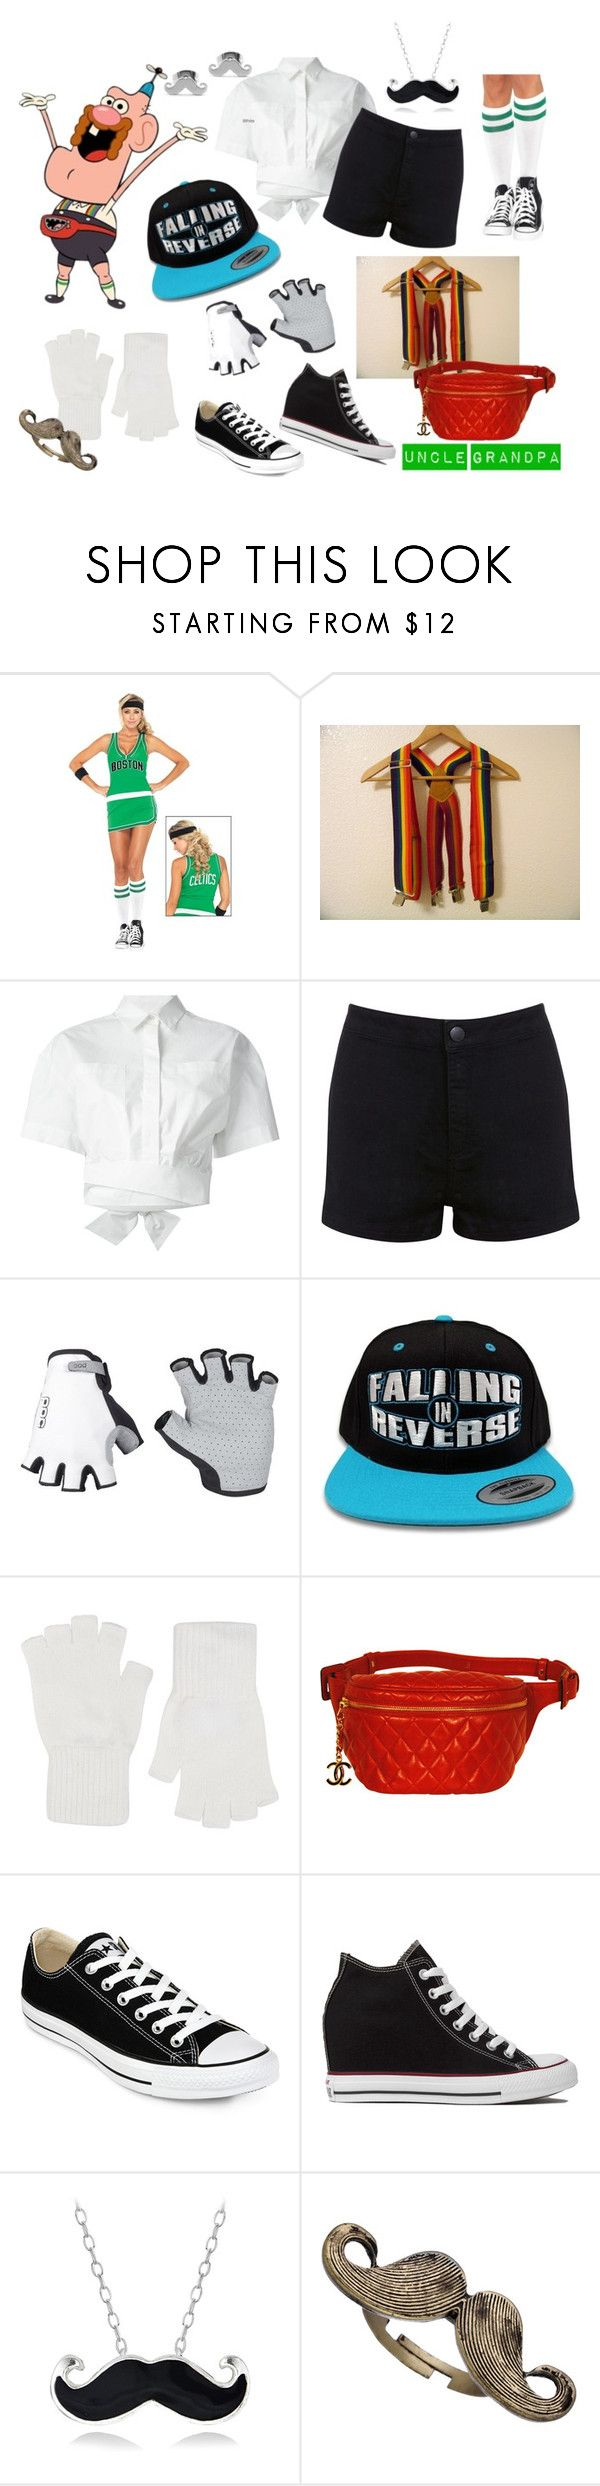 """It's YOUR Uncle Grandpa! :D"" by theartfart ❤ liked on Polyvore featuring Retrò, MSGM, Miss Selfridge, Harrods, Chanel, Converse, Mondevio, Blu Bijoux and West Coast Jewelry"